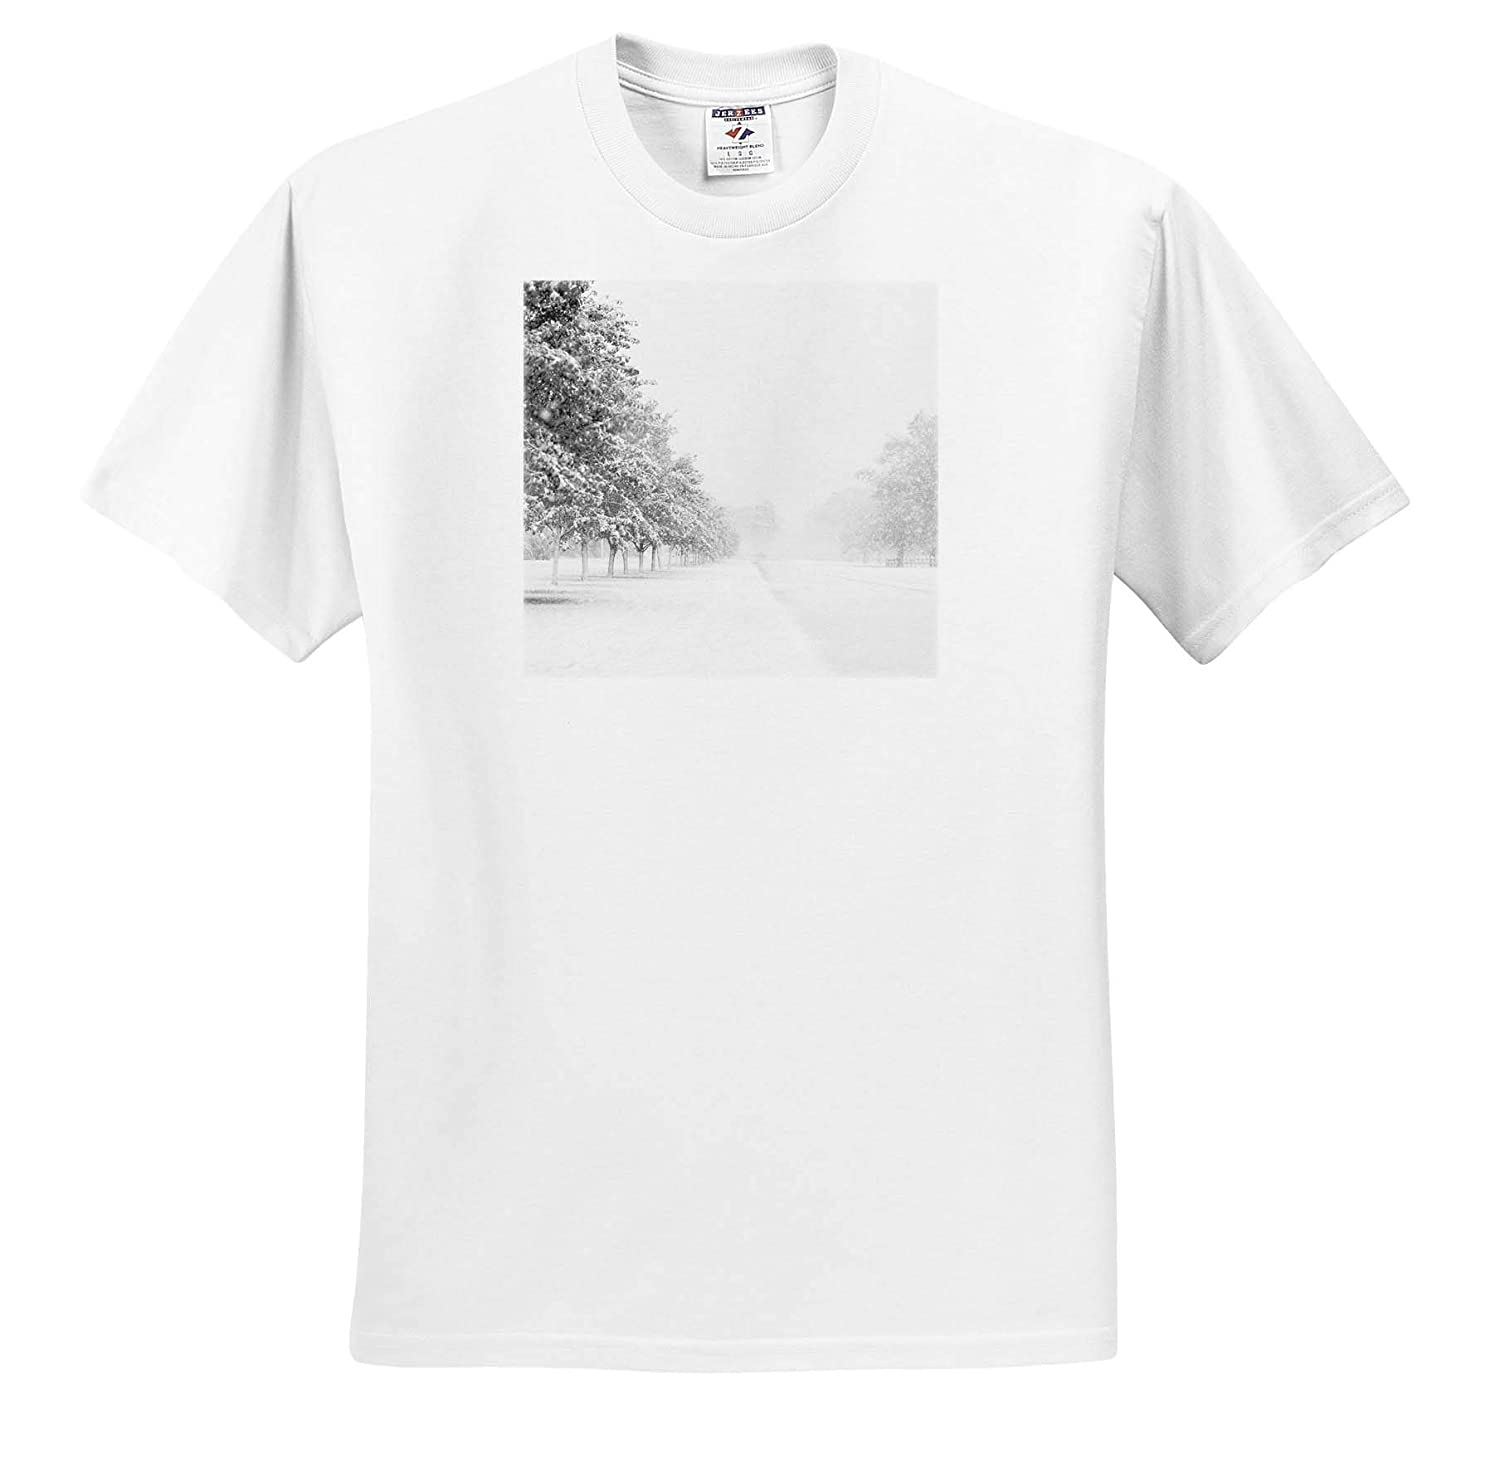 3dRose Stamp City Winter - T-Shirts Photograph of a Road Lined with Trees with Freshly Fallen Snow